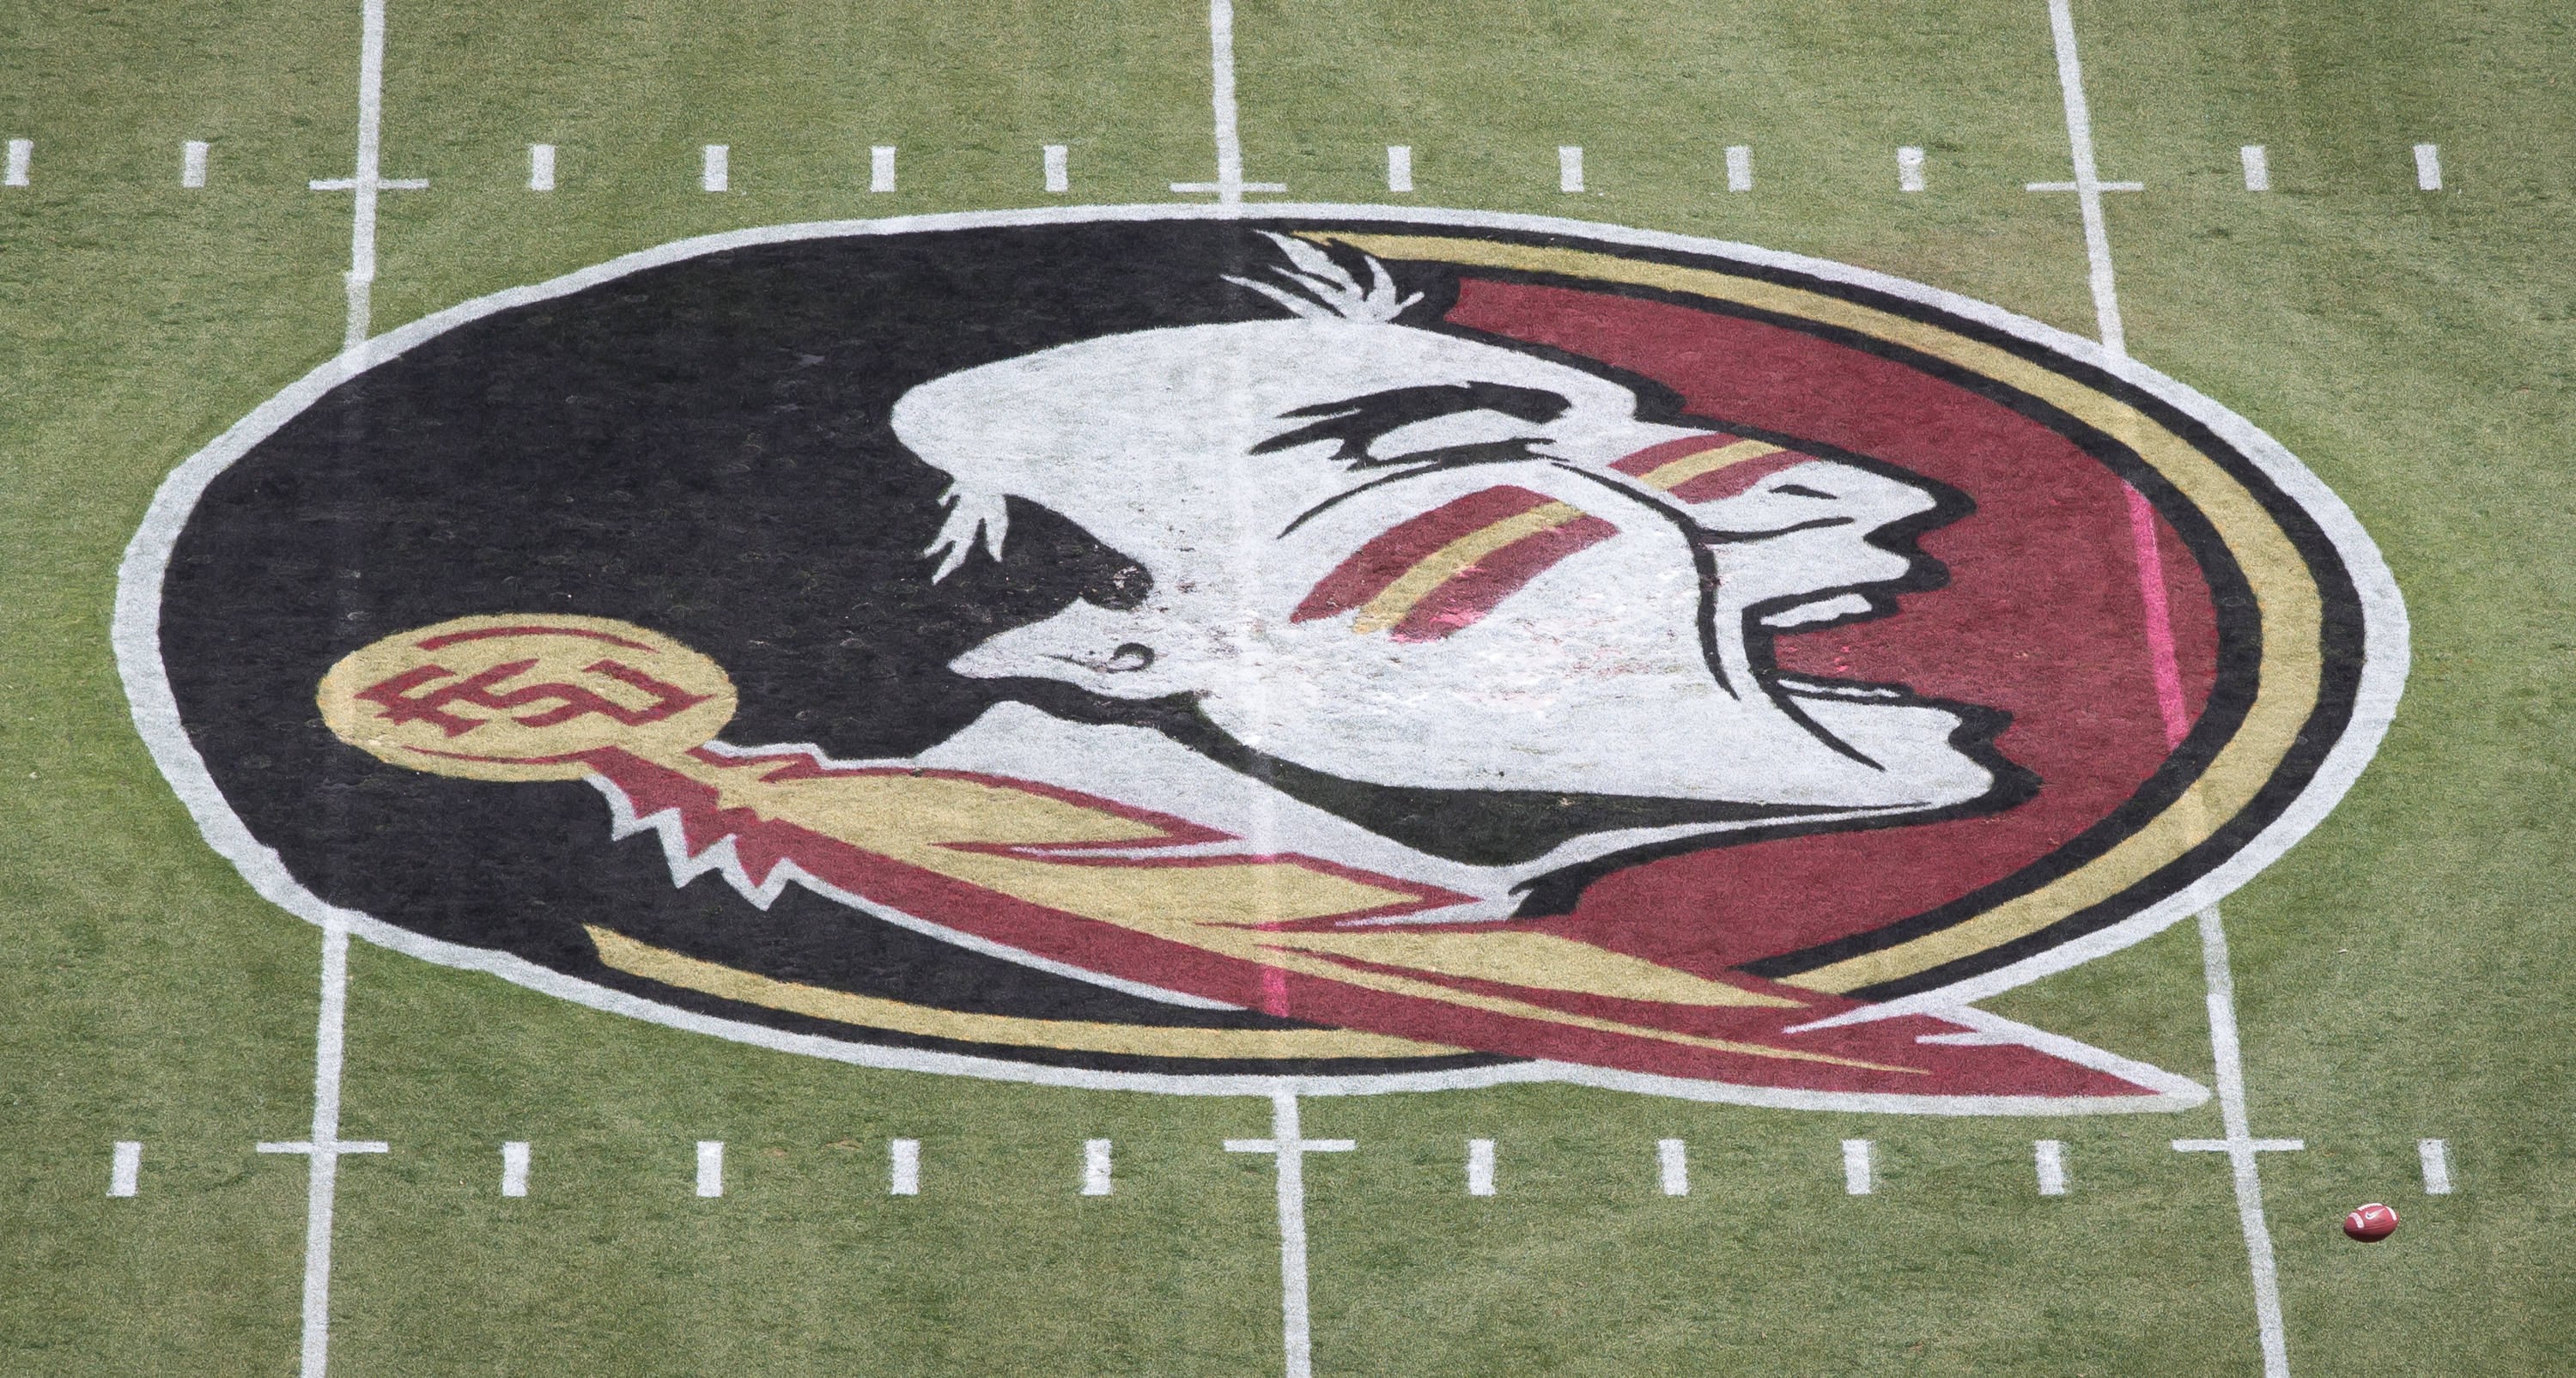 FSU introduces a new logo at mid field.